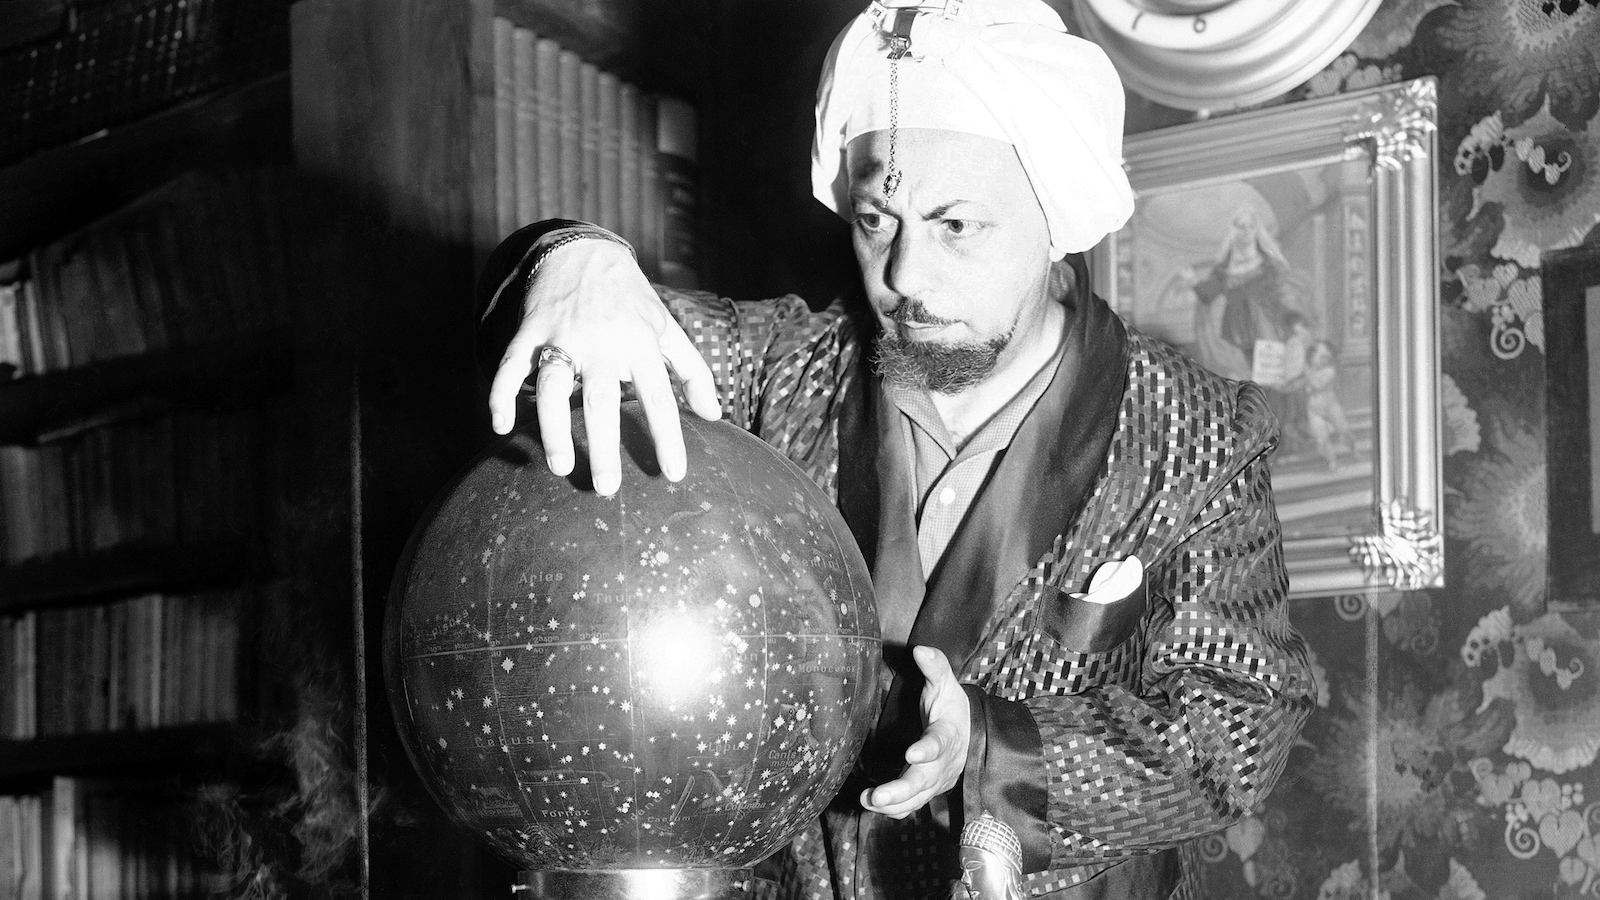 "Whenever an event of importance happens in Italy, it is the fashion of some Romans to consult Professor Lelio Alberto Fabriani, the ""Magician of Rome"", shown June 27, 1952 for his spectral interpretation of it. The professor was asked to look into his globe when twin girls were born to actress Ingrid Bergman and her husband Roberto Rossellini. The professor peered and peered into his globe of the sky and finally predicted; ""They will not become celebrities."" (AP Photo/Mario Torrisi)"